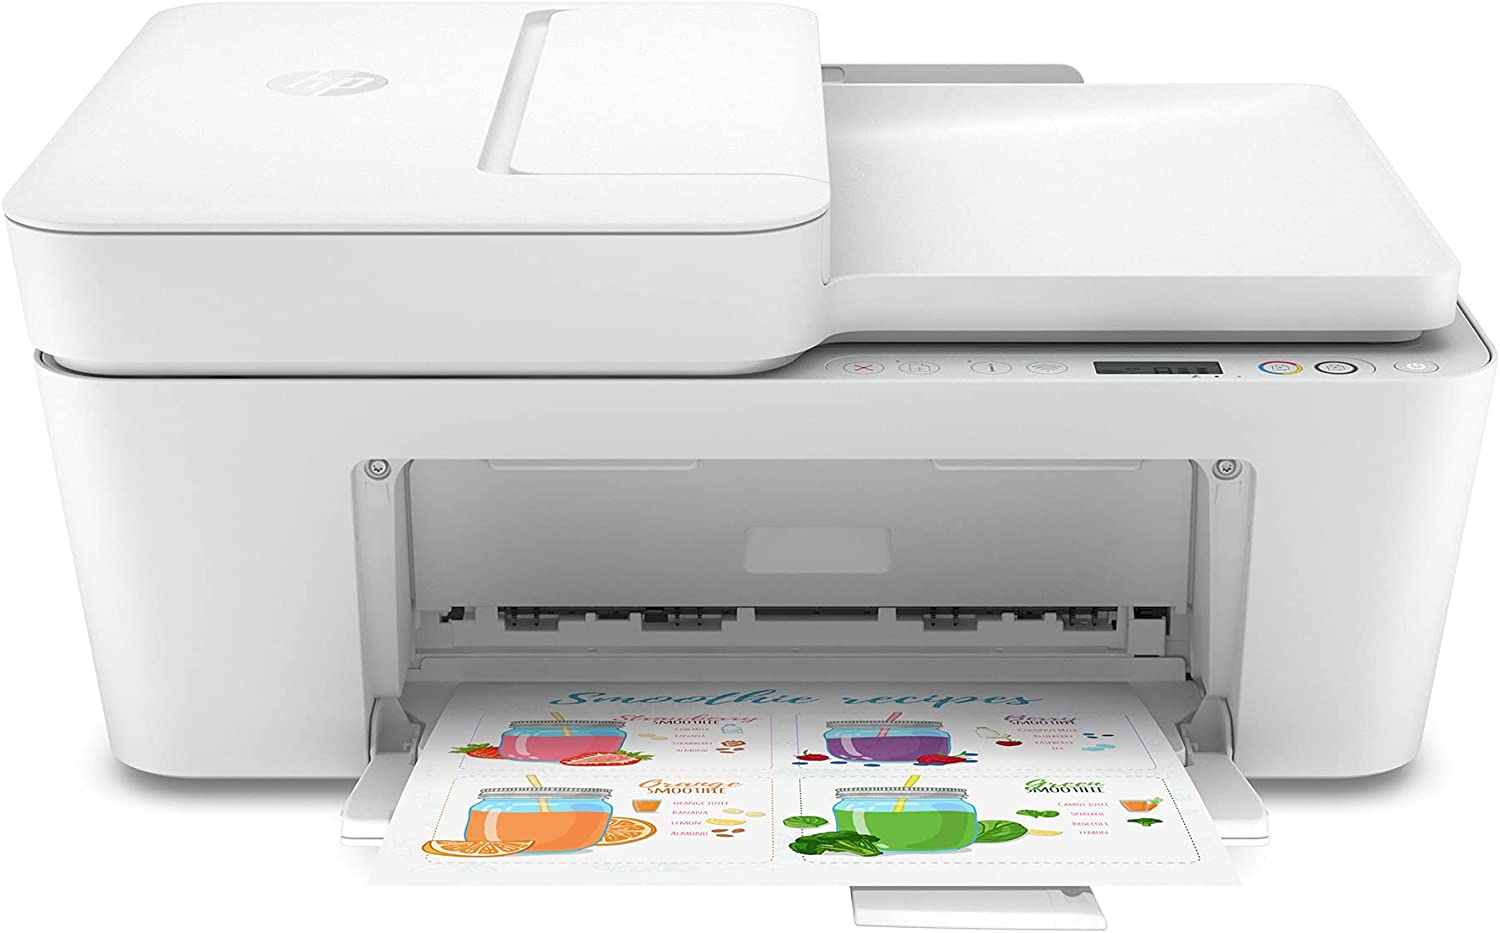 HP DeskJet Plus Series All-in-One Wireless Bluetooth Color Inkjet Printer - Instant Ink Ready - Mobile Fax, Print, Copy, Scan for Home Office - 35 Sheets ADF, Auto 2-Sided Printing, Icon LCD Display